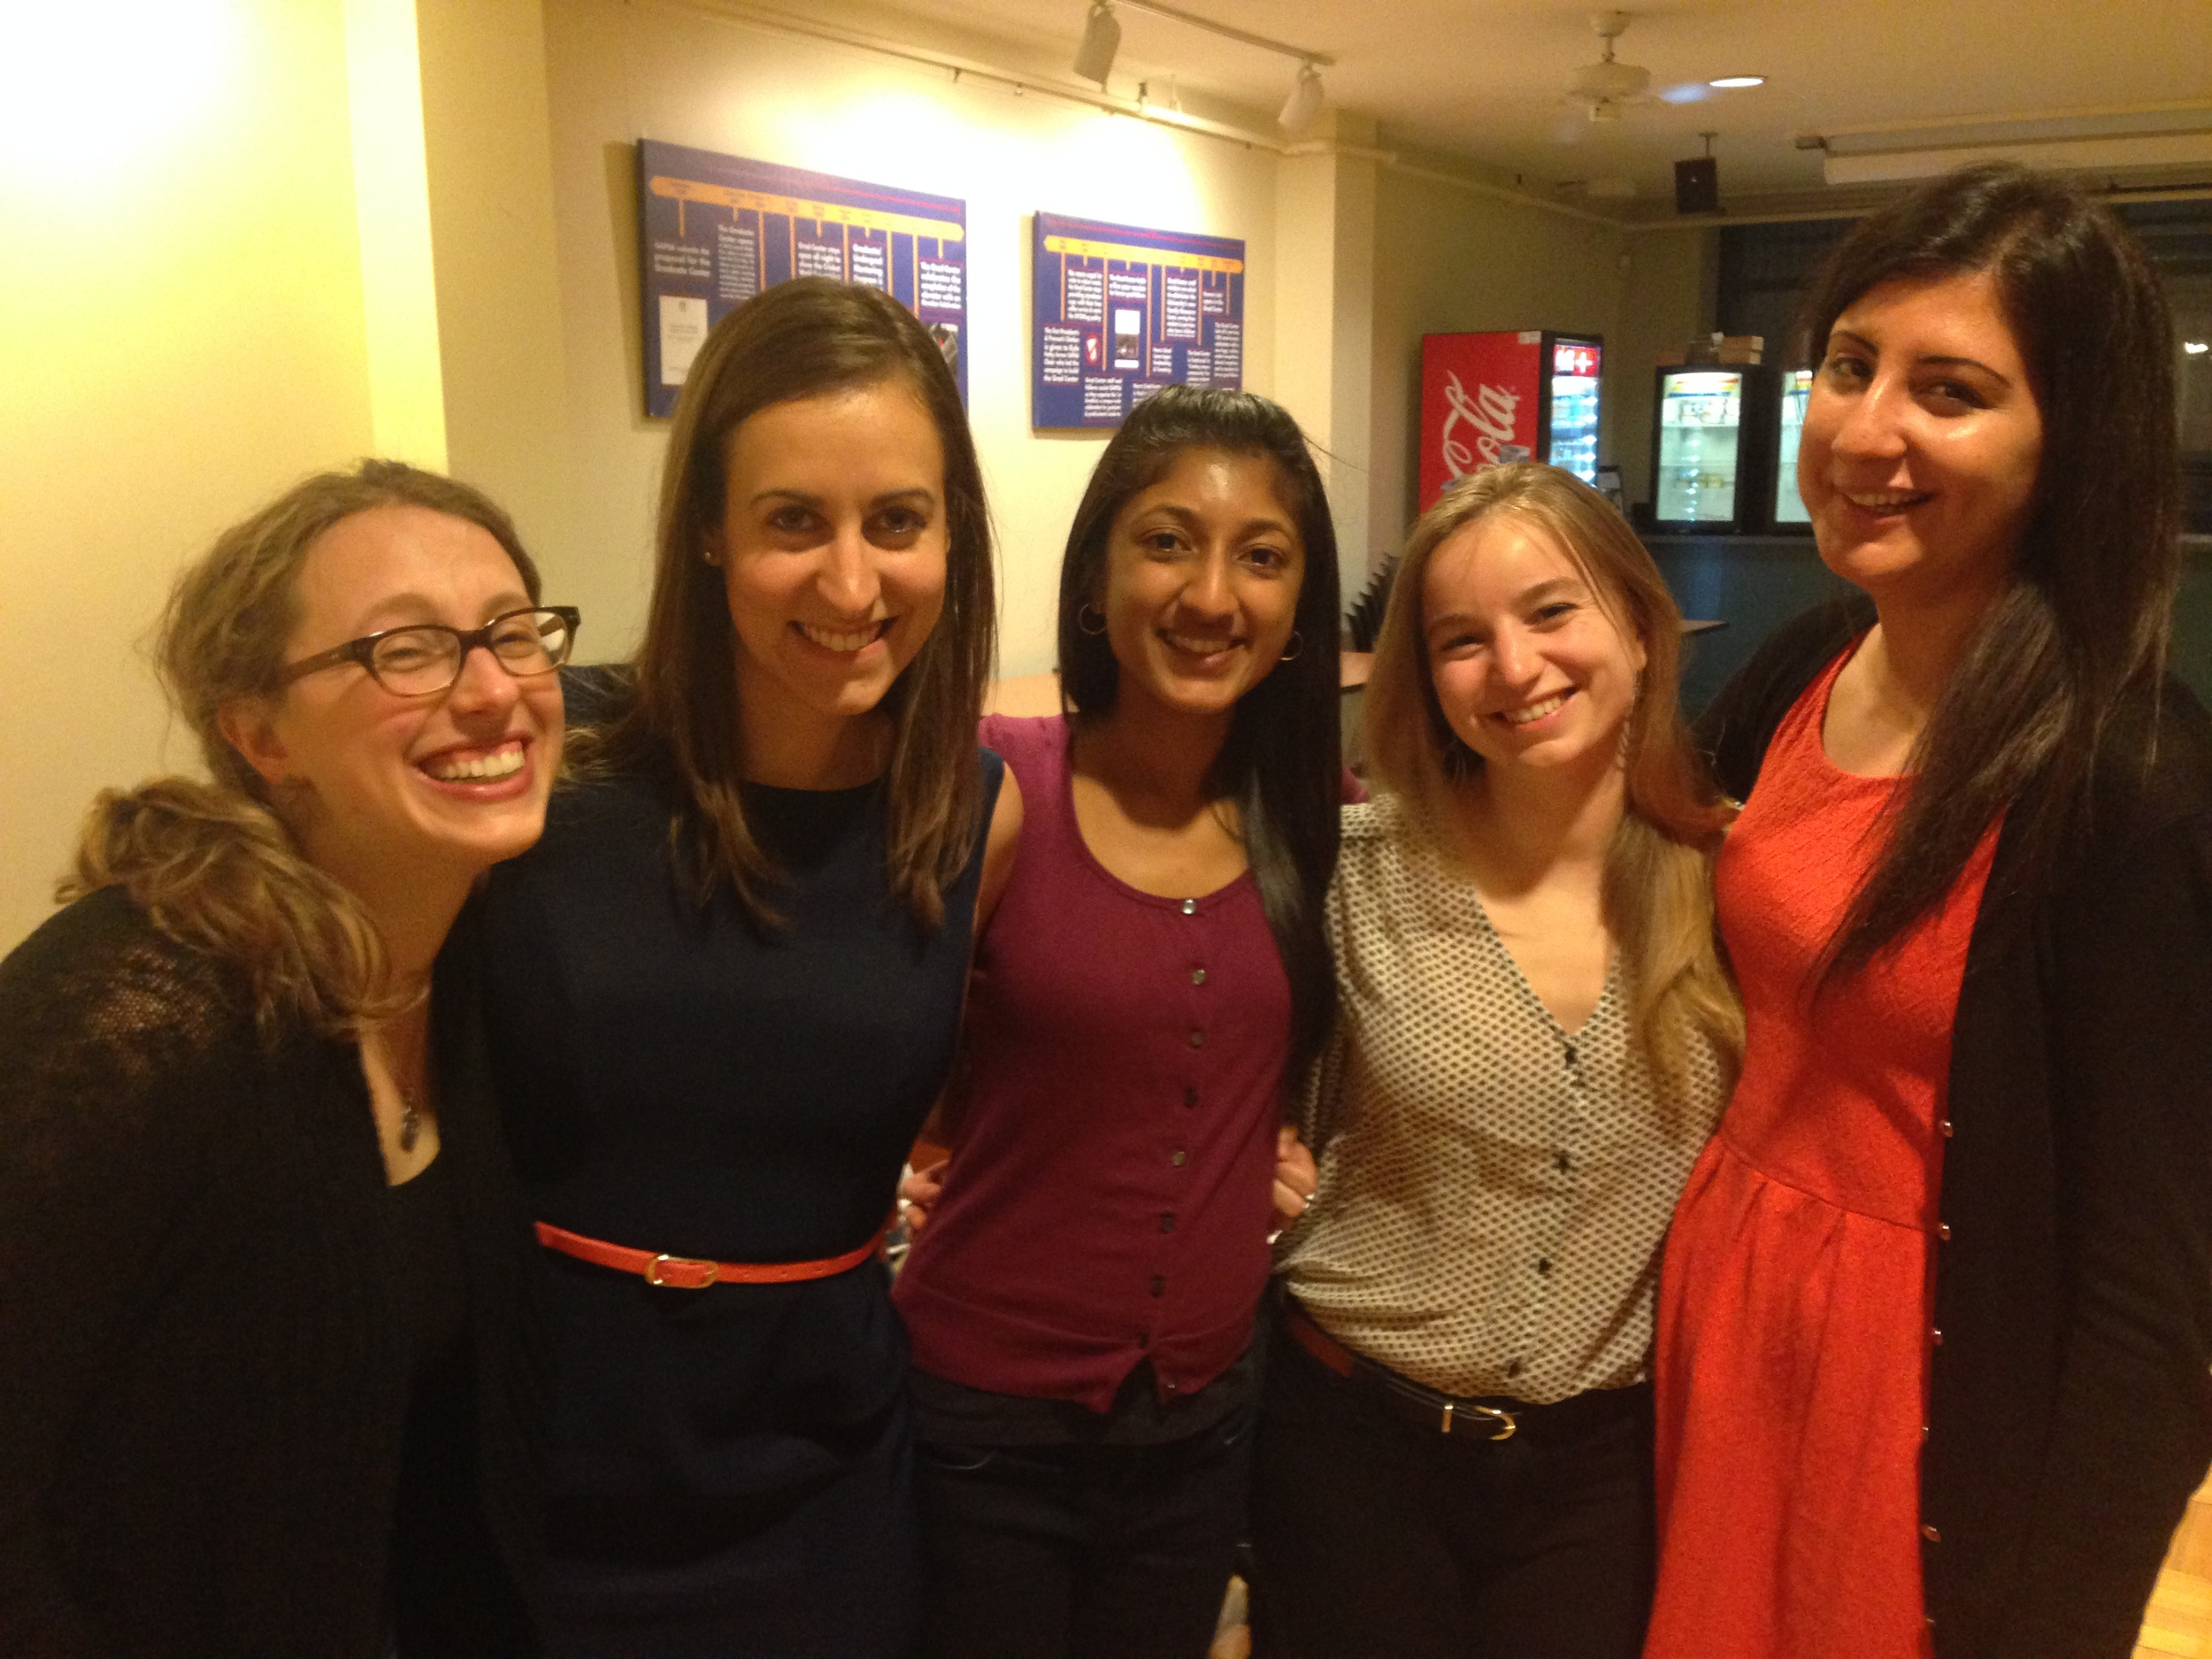 WSAWBA BOARD (and founders)2014. From left to right: Nora, alix, preethi, jessica, basima